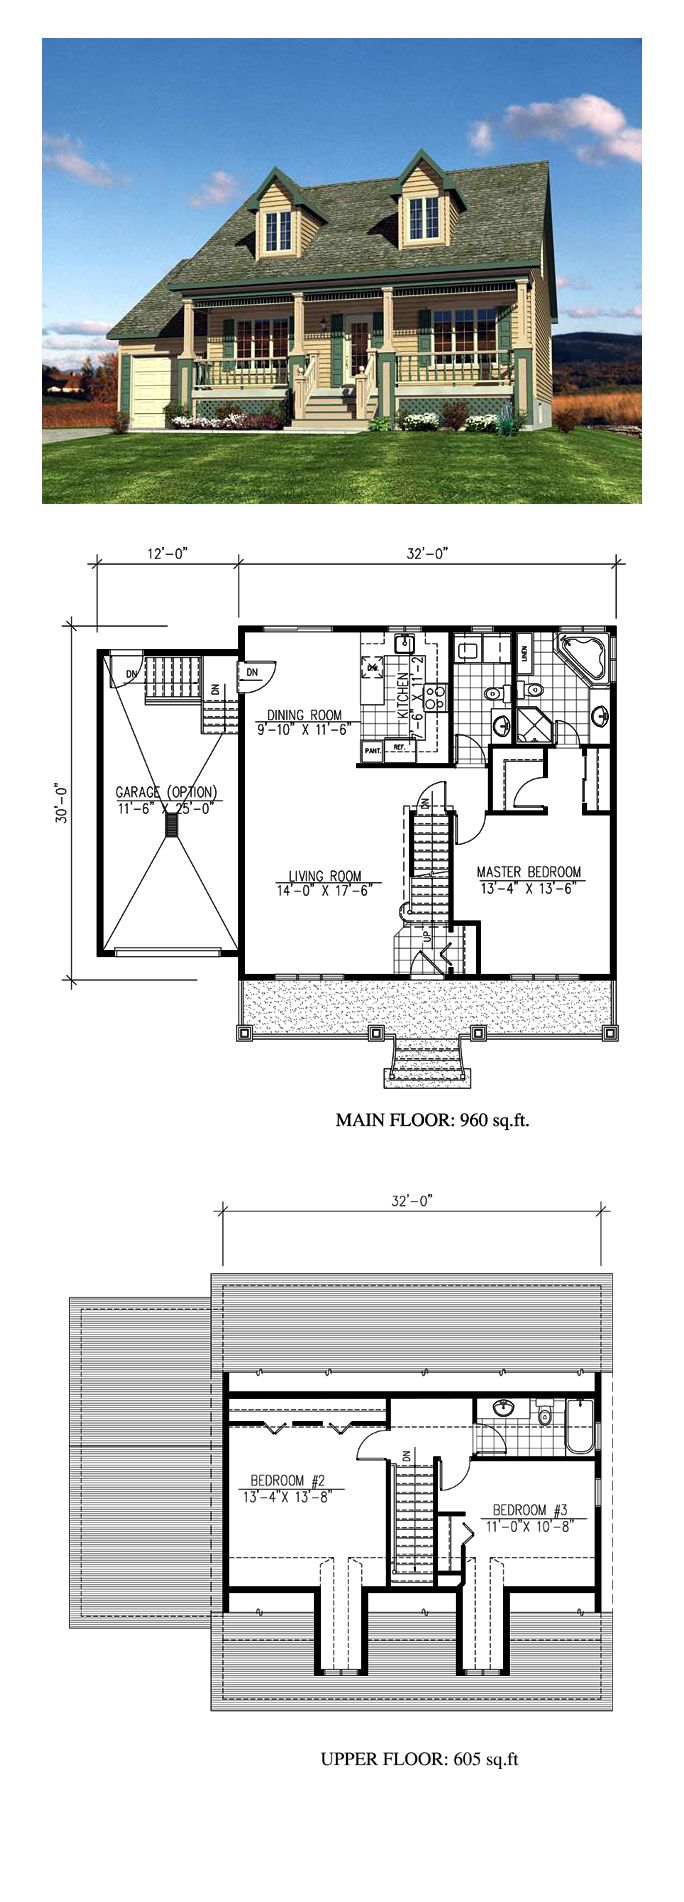 53 best cape cod house plans images on pinterest cape Small cape cod house plans